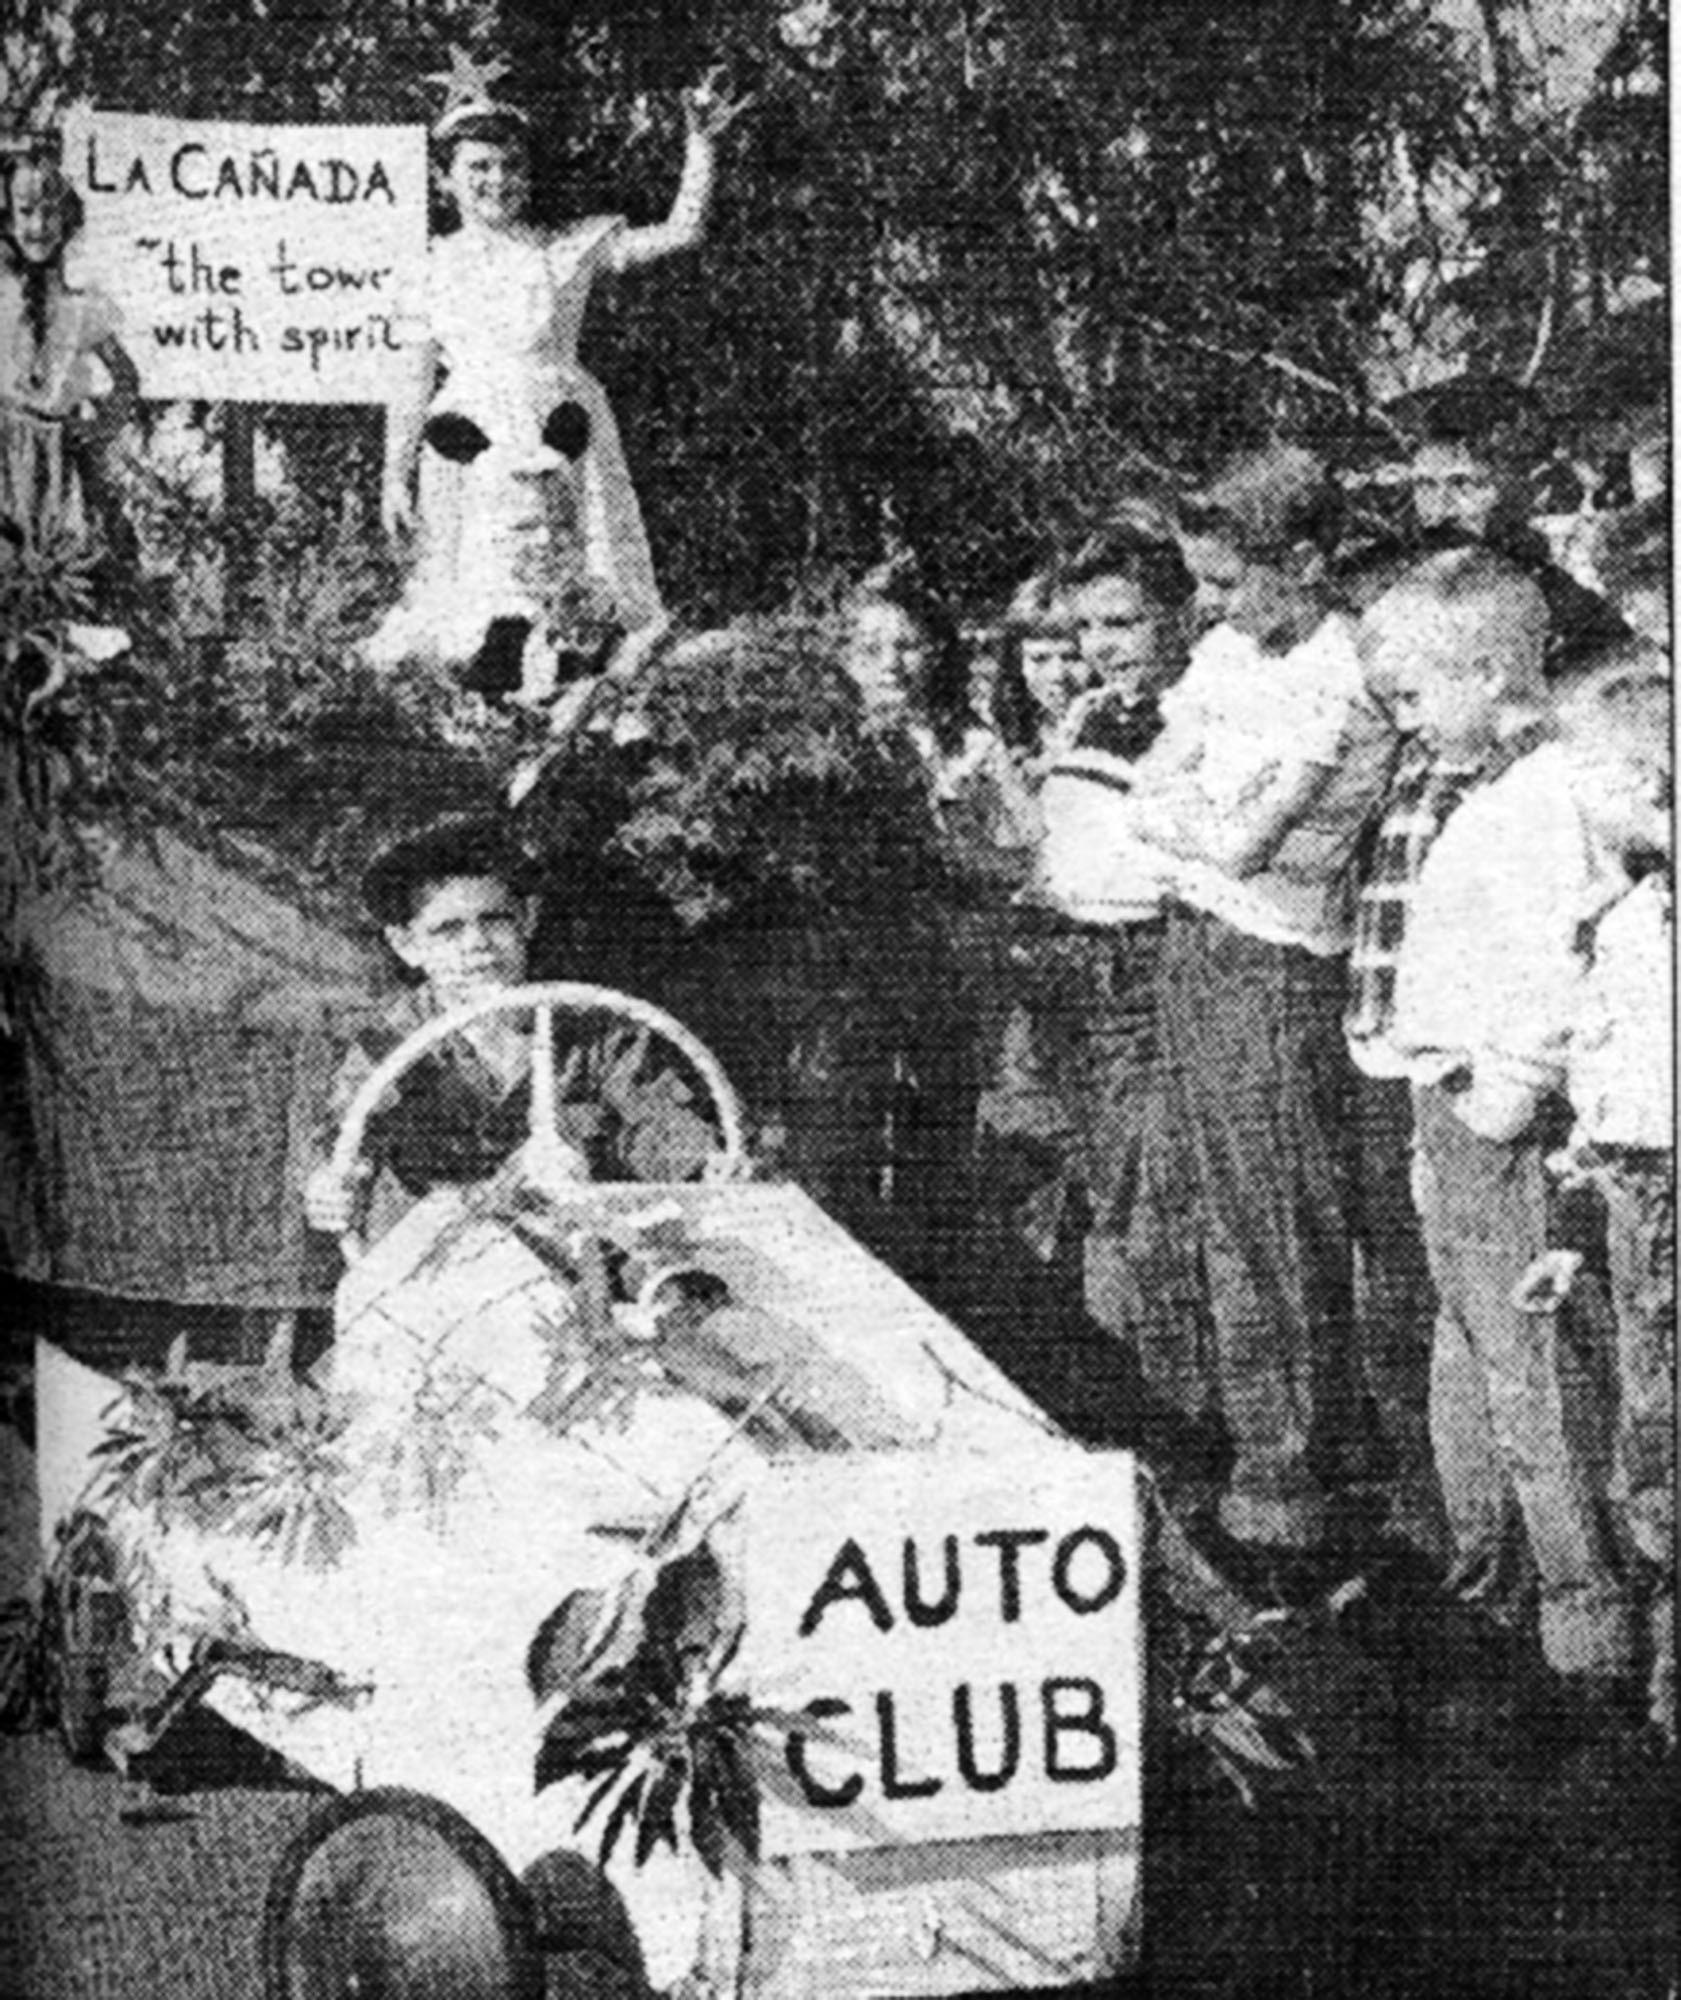 "John Young, 9, behind the wheel of a cart labeled ""Auto Club"" comes to the rescue of a self-built float that was paraded in the Rancho section of town in late December 1953 in homage to Pasadena's Rose Parade. ""La Canada, 'the town with spirit'"" proclaims the sign on the float, on which Christine Roche, 6, and 7-year-old Rayleen Edwards stand."